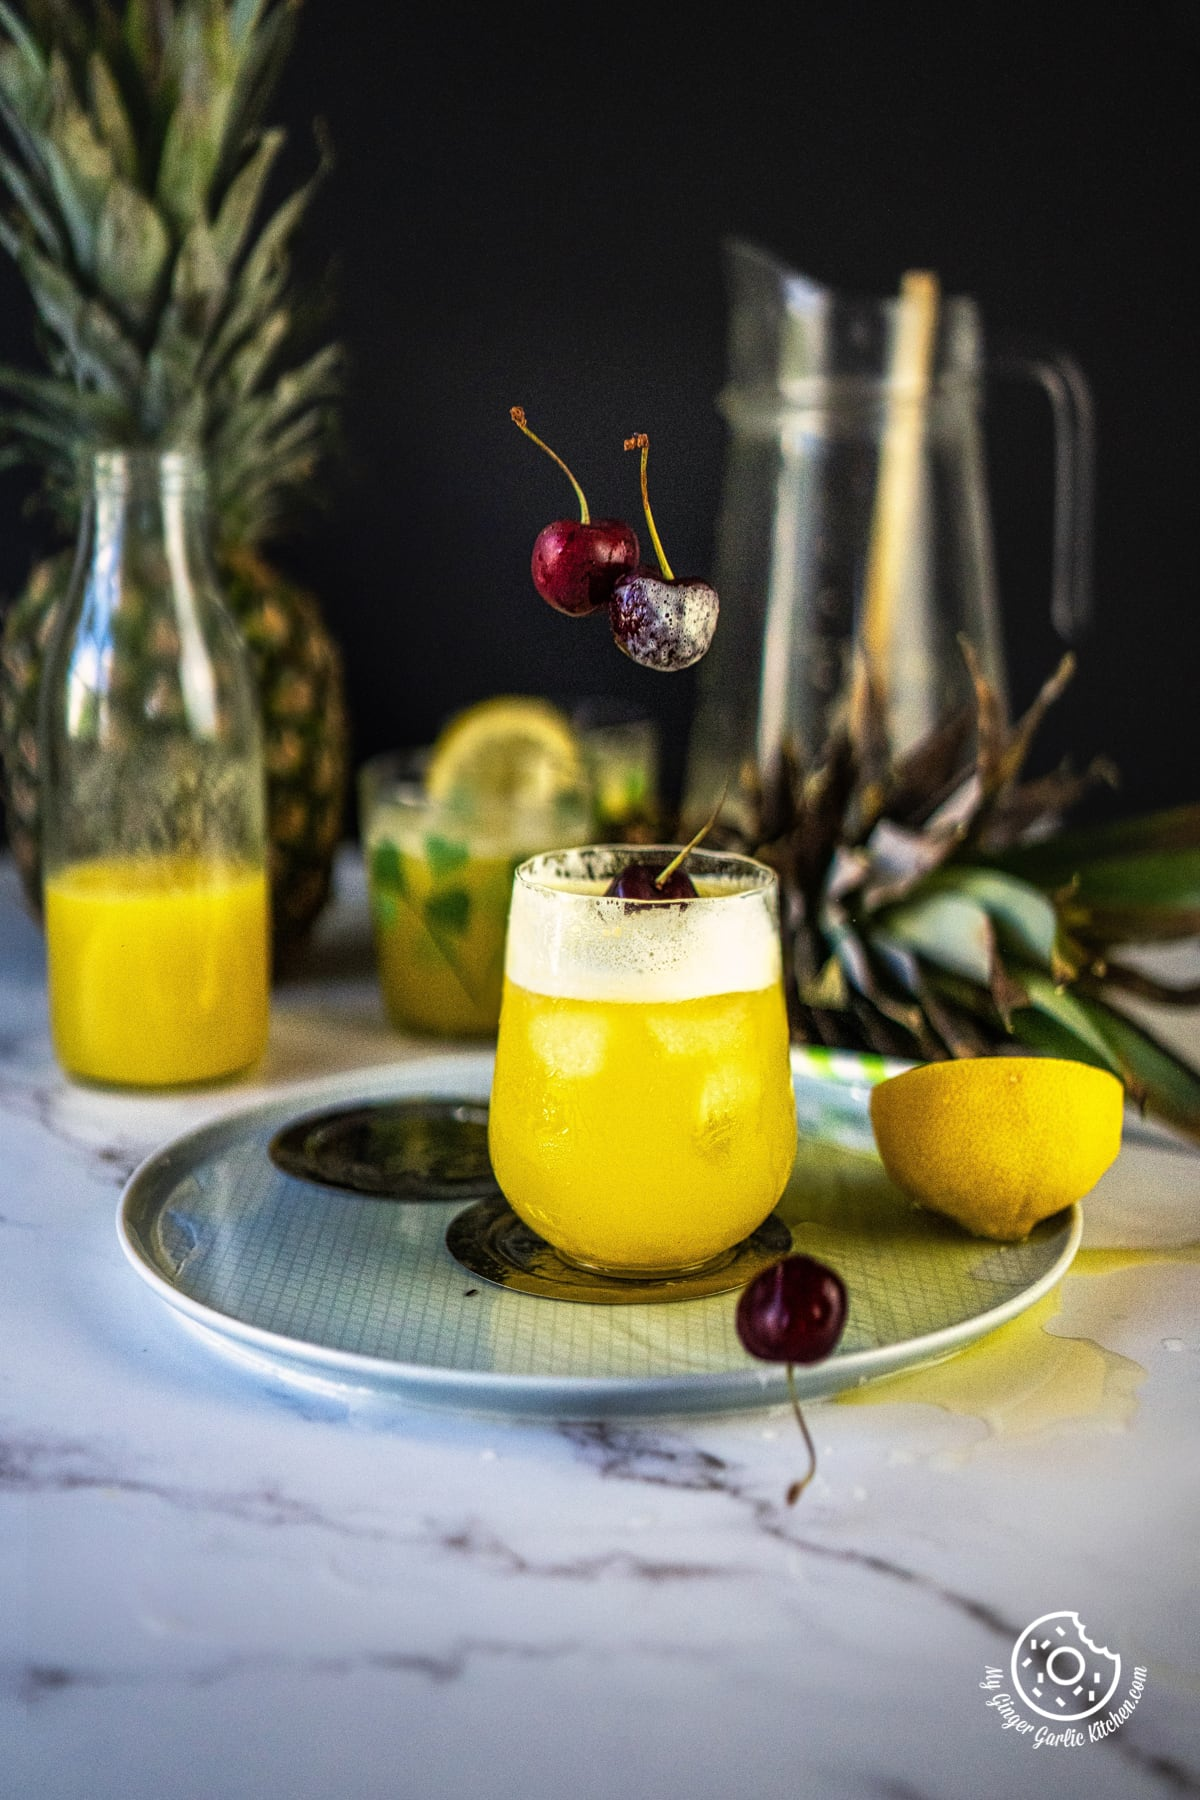 pineapple juice in a plate with a cherry and lemon on the side